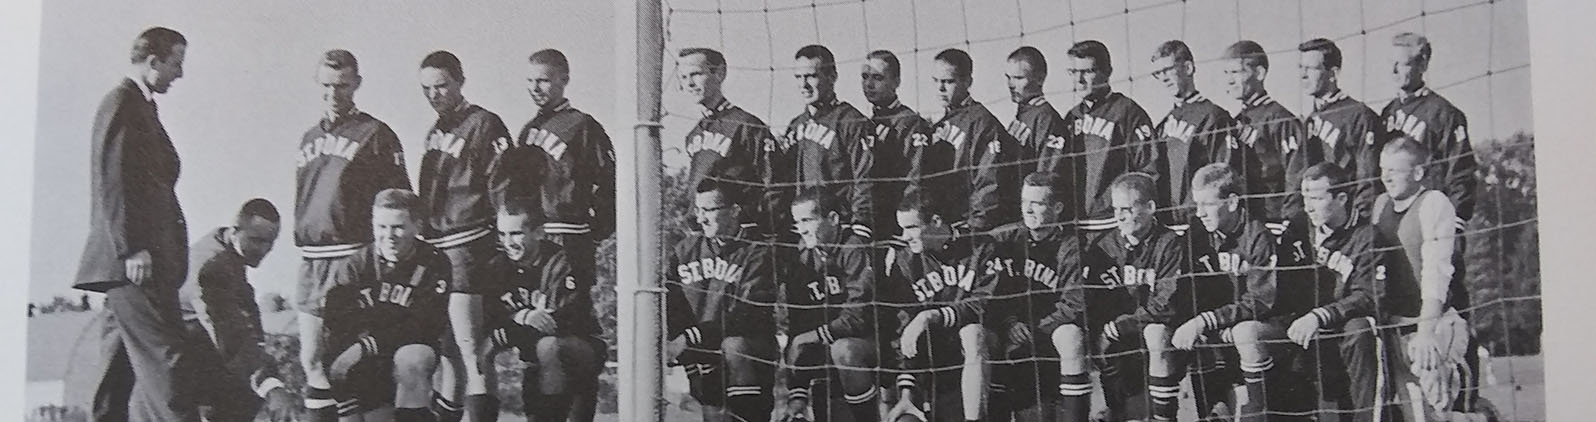 Pictured_The Bennett brothers at far right, in back row